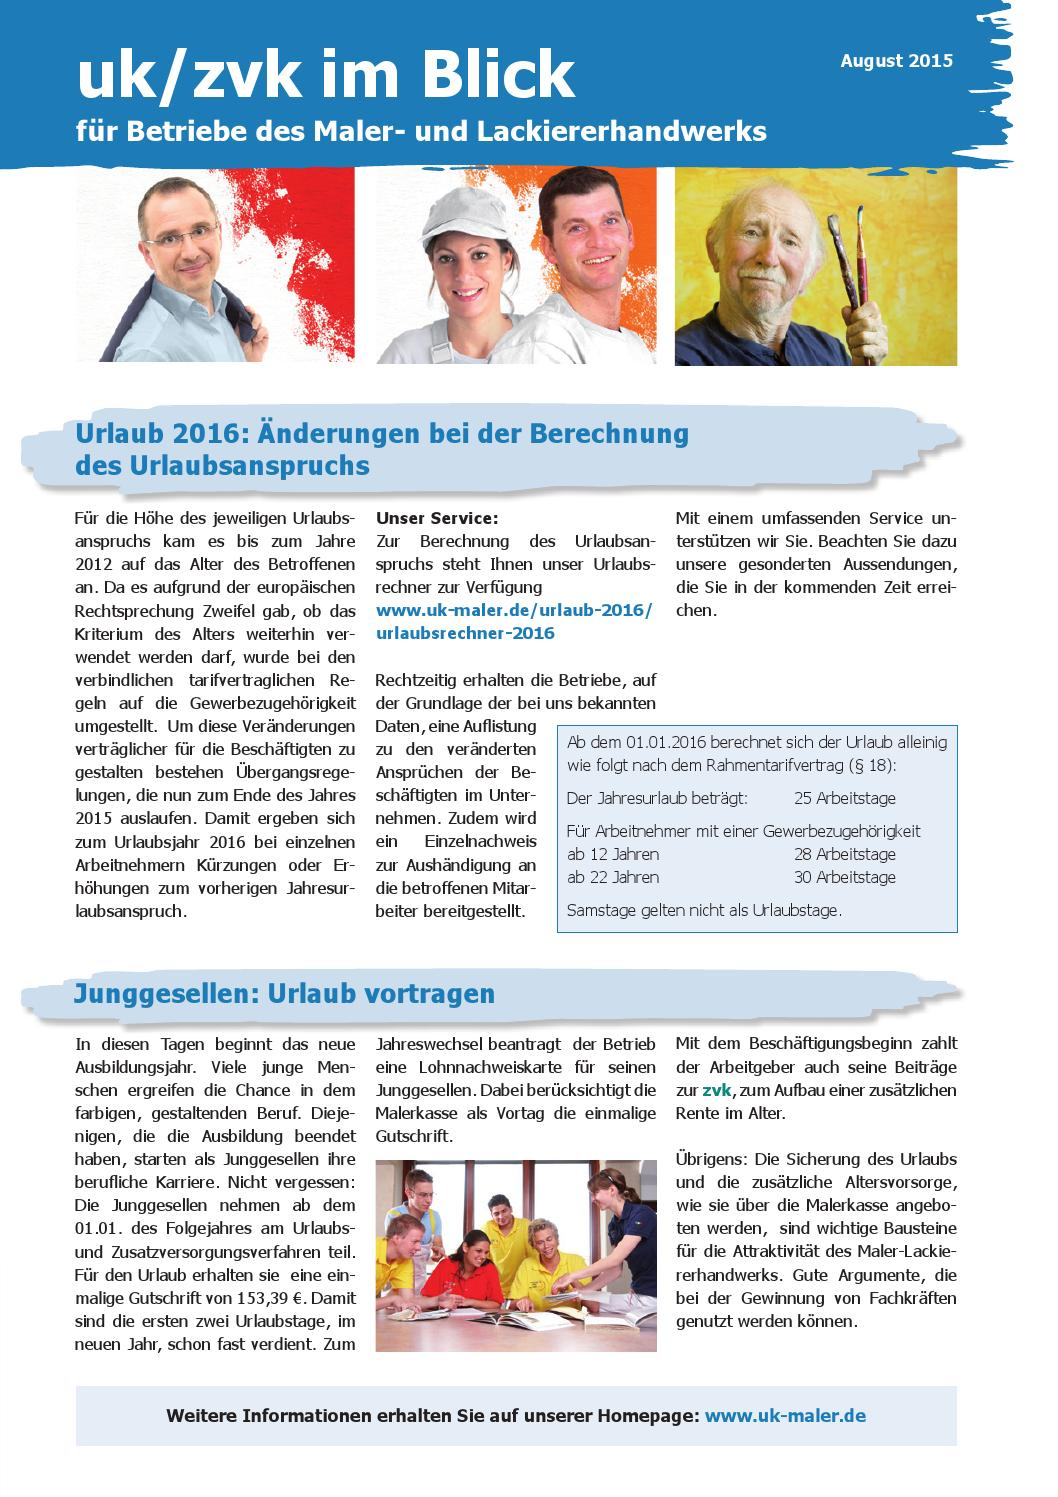 Betriebe Maler Uk Zvk Im Blick August 2015 By Malerkasse Issuu